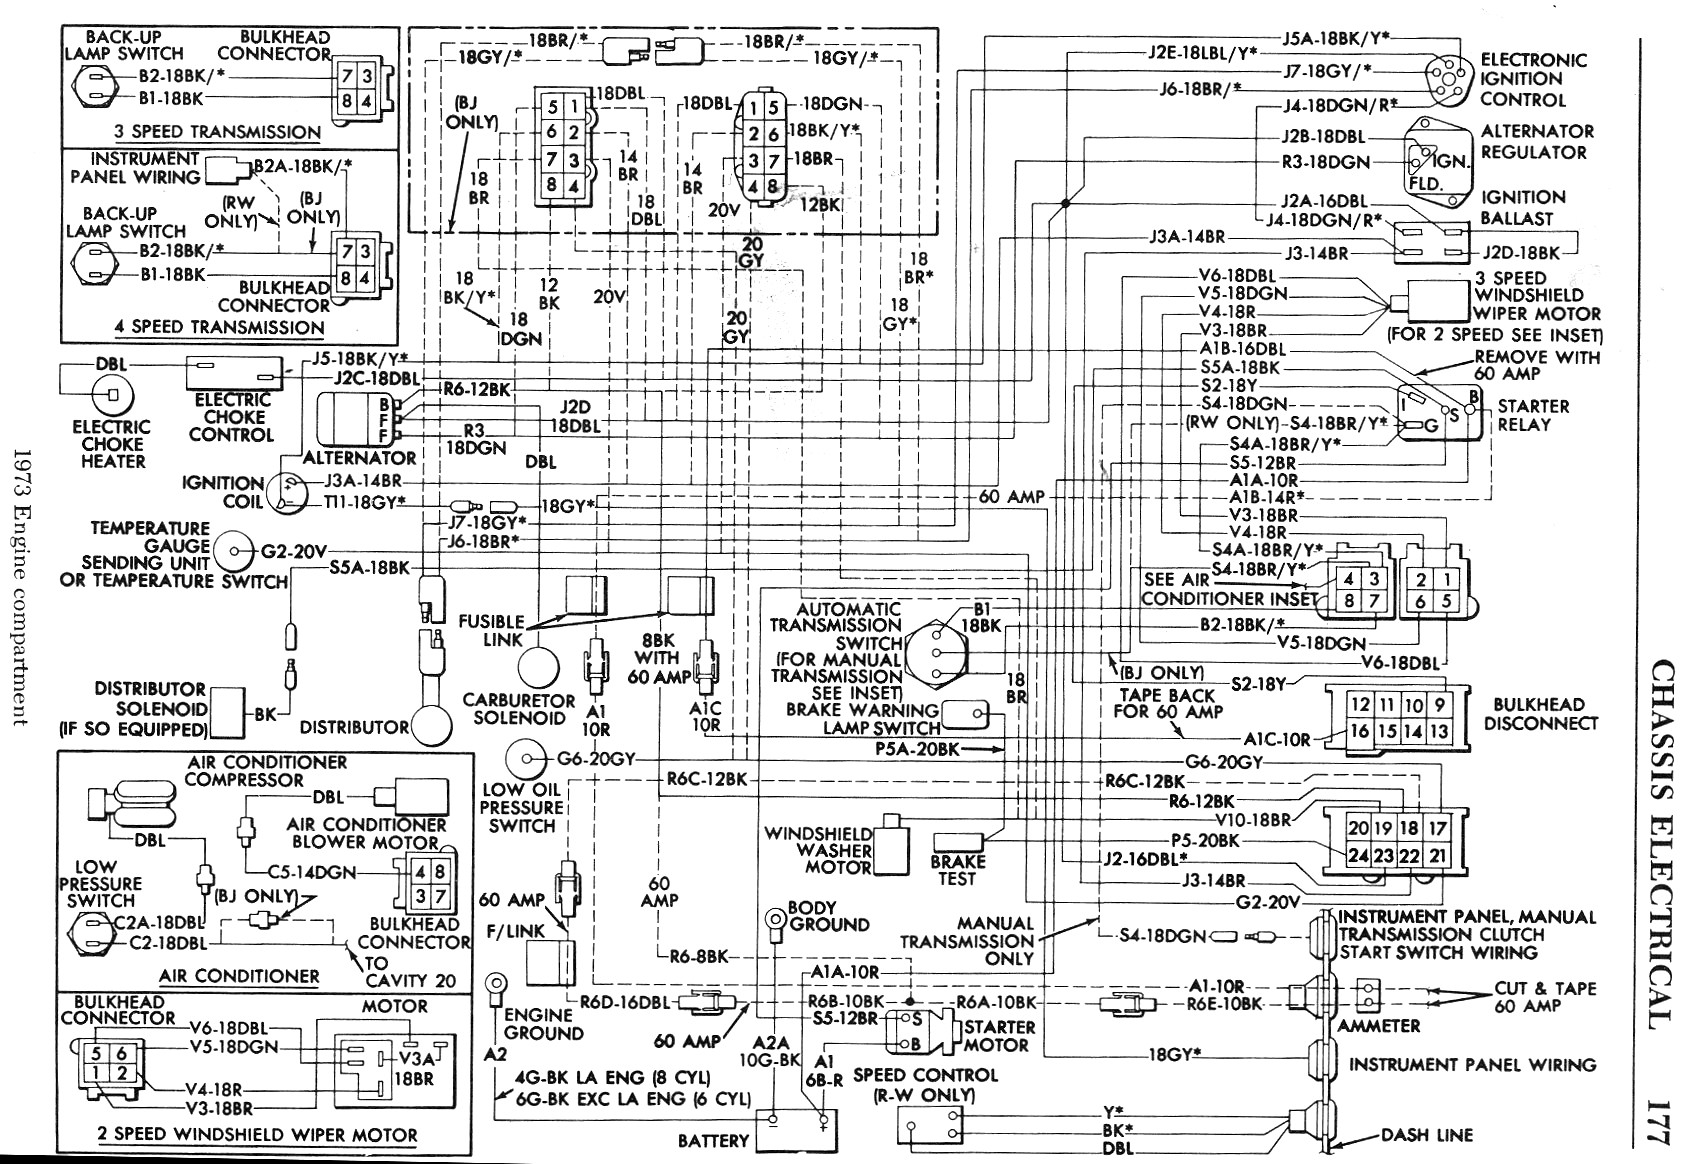 1967 Dodge Dart Wiring Diagram Starting Know About Alternator Also 1981 Chevy Truck On 350 Get Free Image